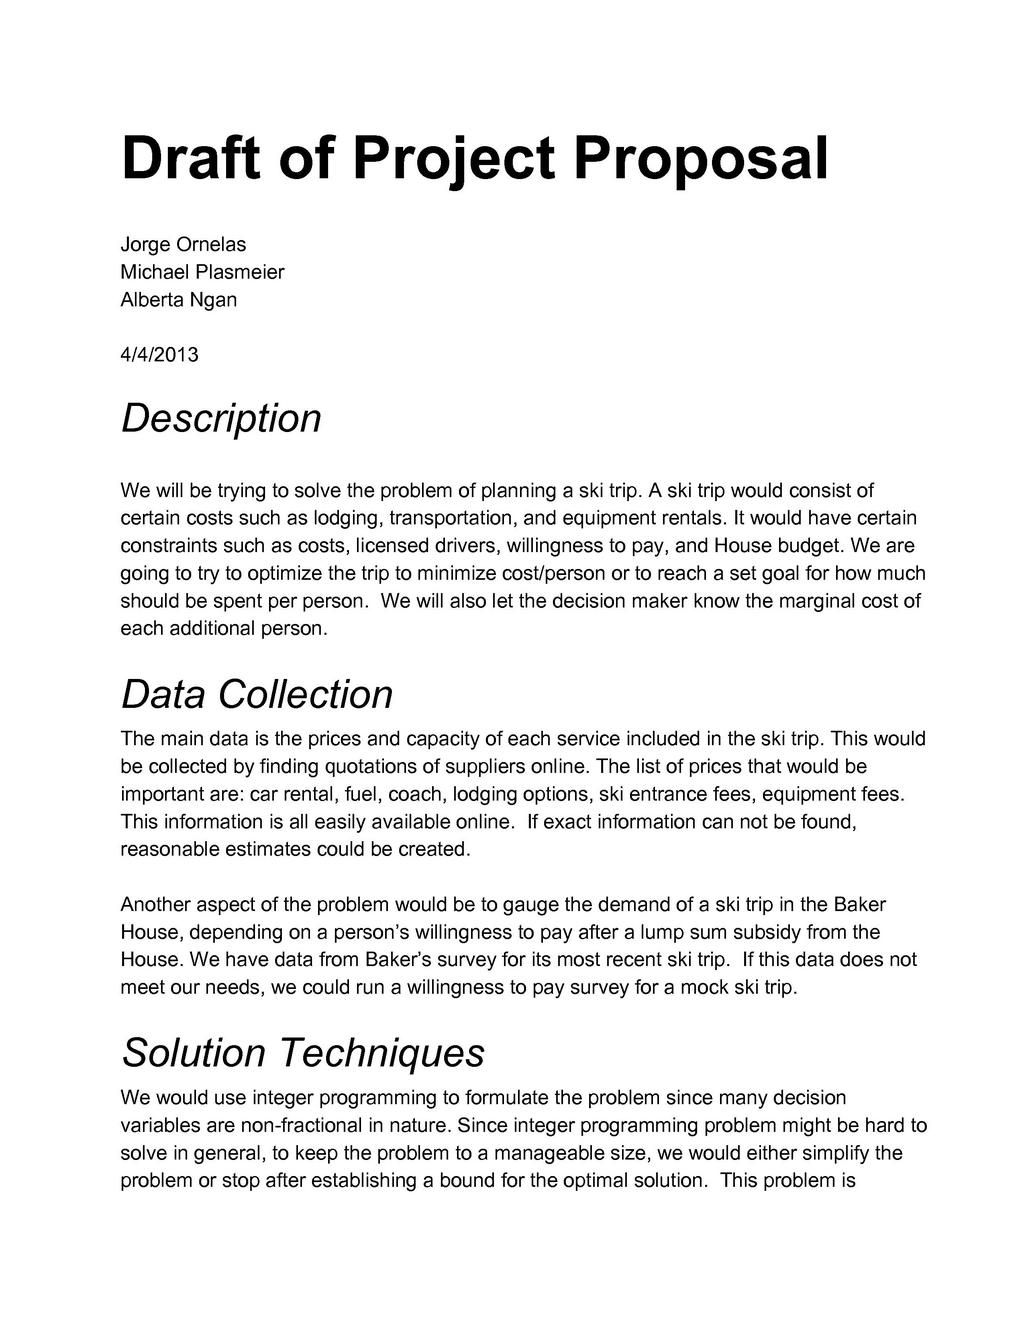 proposal drafting research Pinterest Proposals